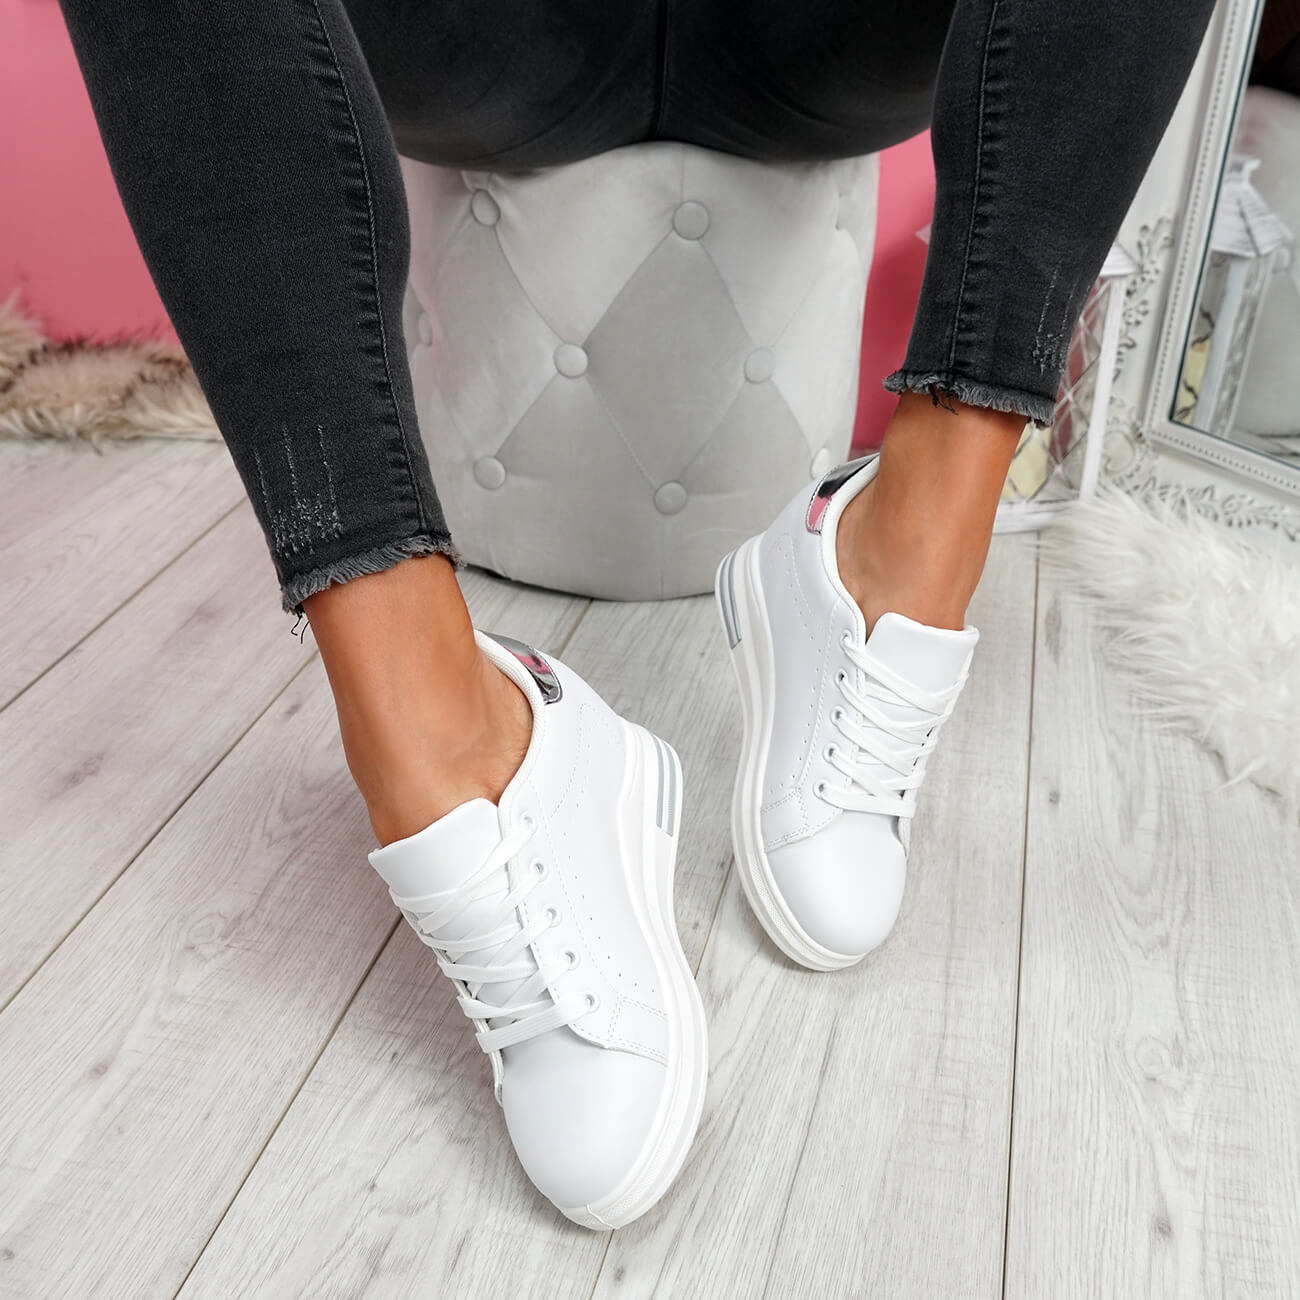 WOMENS-LADIES-LACE-UP-WEDGE-TRAINERS-HEEL-SNEAKERS-SHINY-PARTY-WOMEN-SHOES thumbnail 15